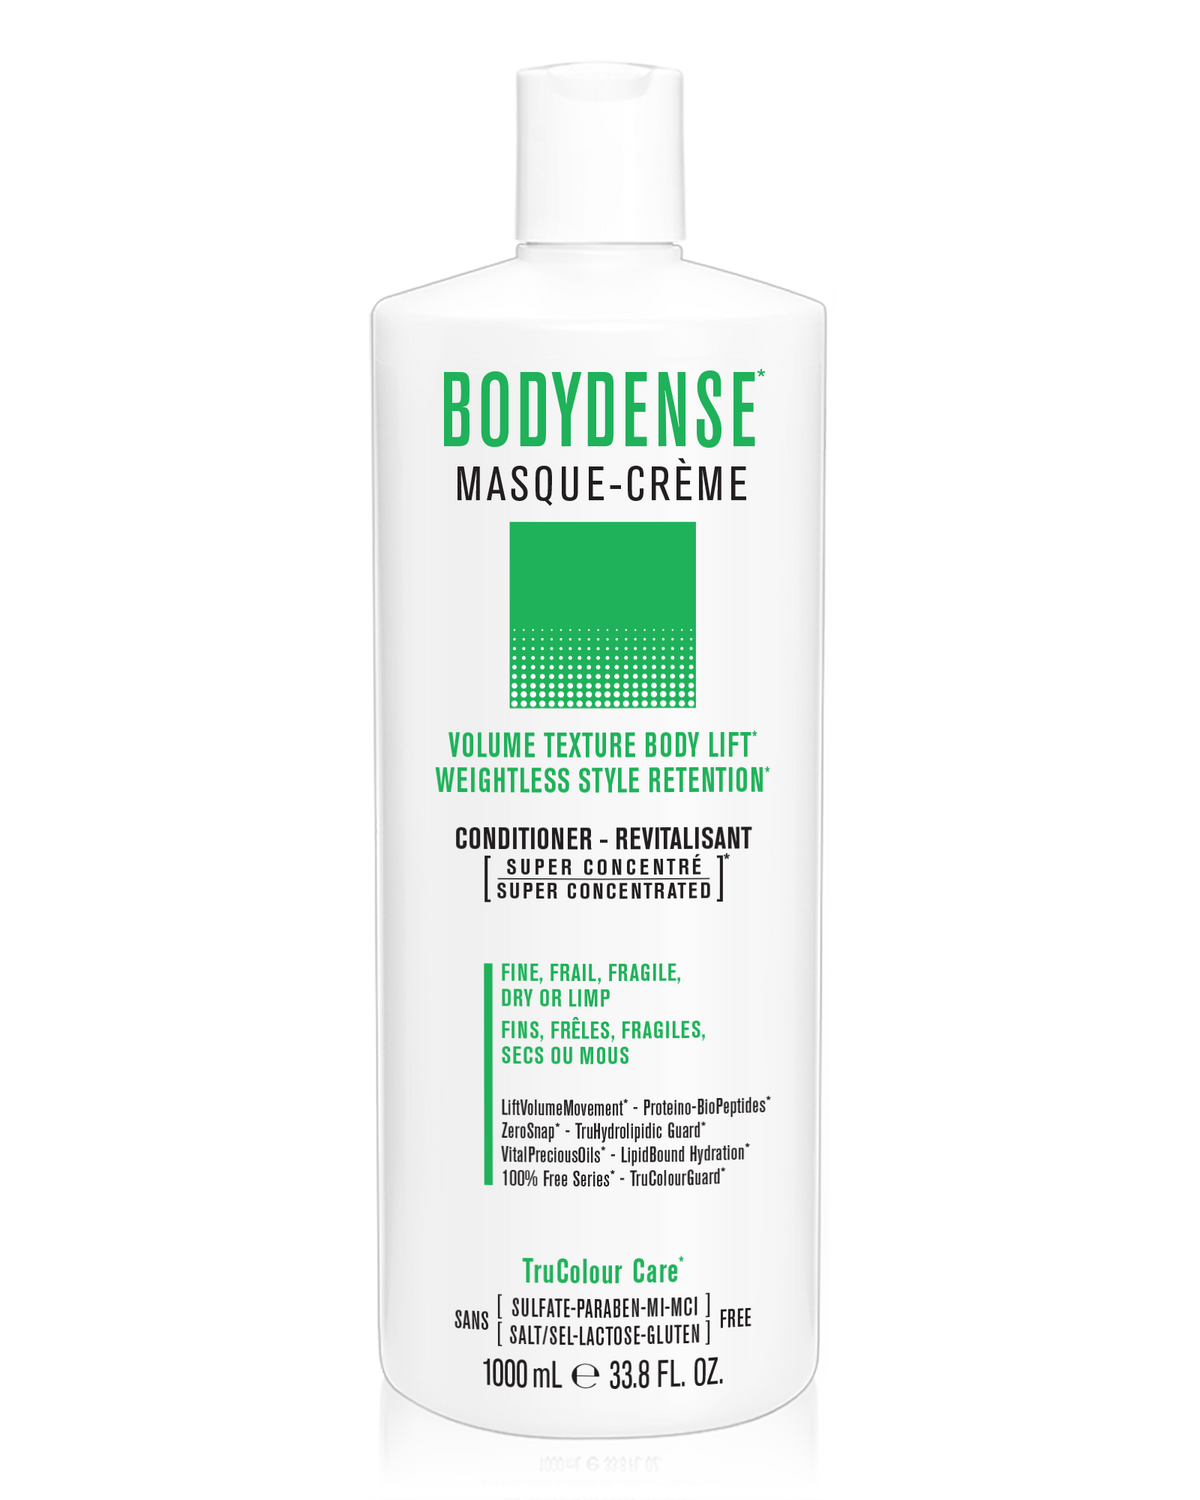 BODYDENSE Volume Texture Body Lift Masque-Creme (conditioner) - SNOBGIRLS.com